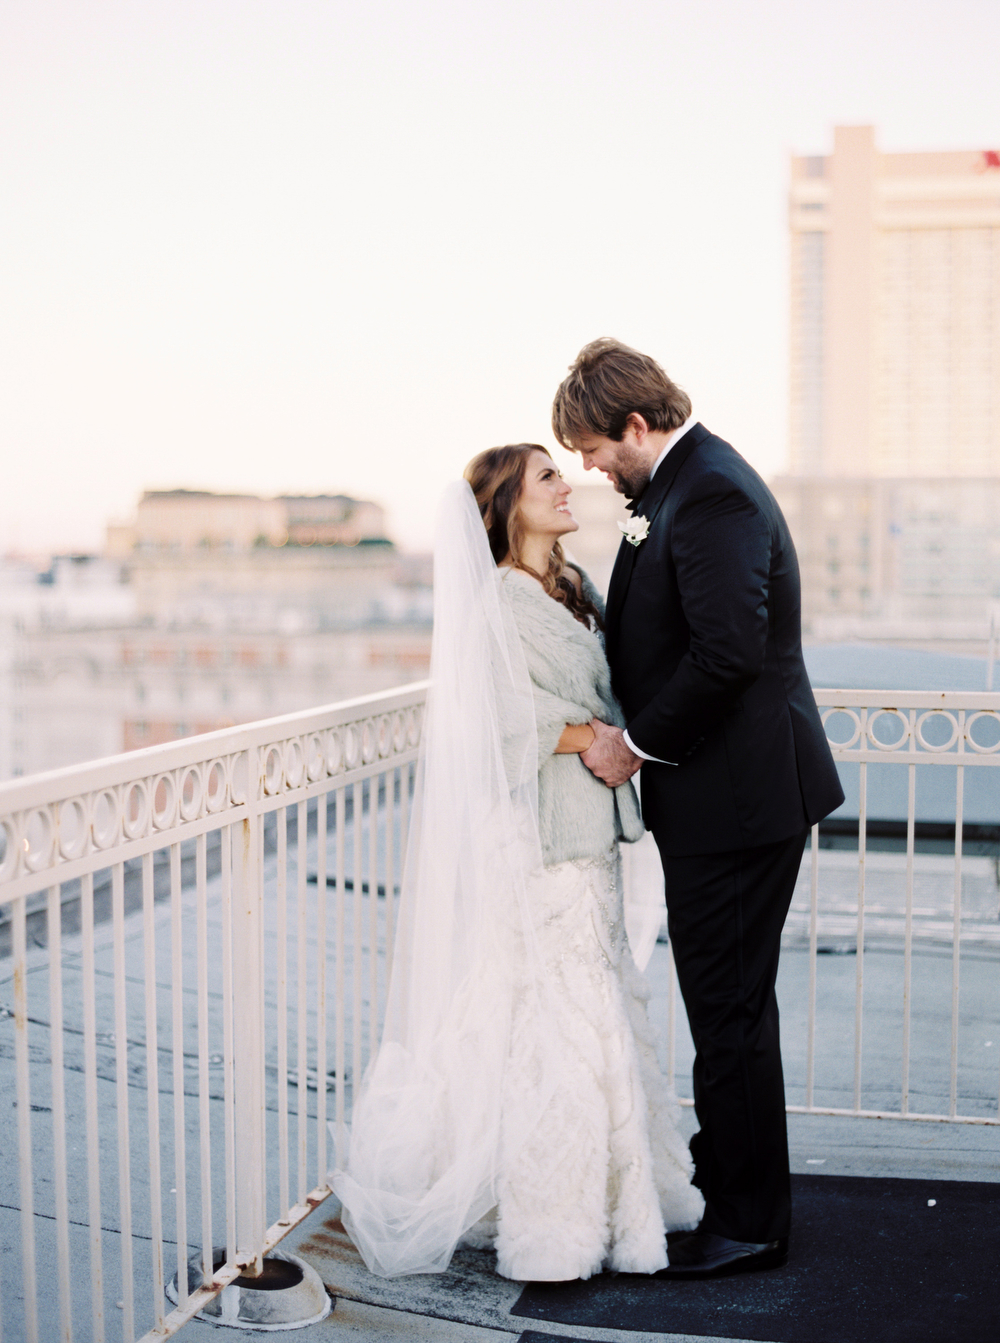 bride and groom holding each other and looking into their eyes with city in background